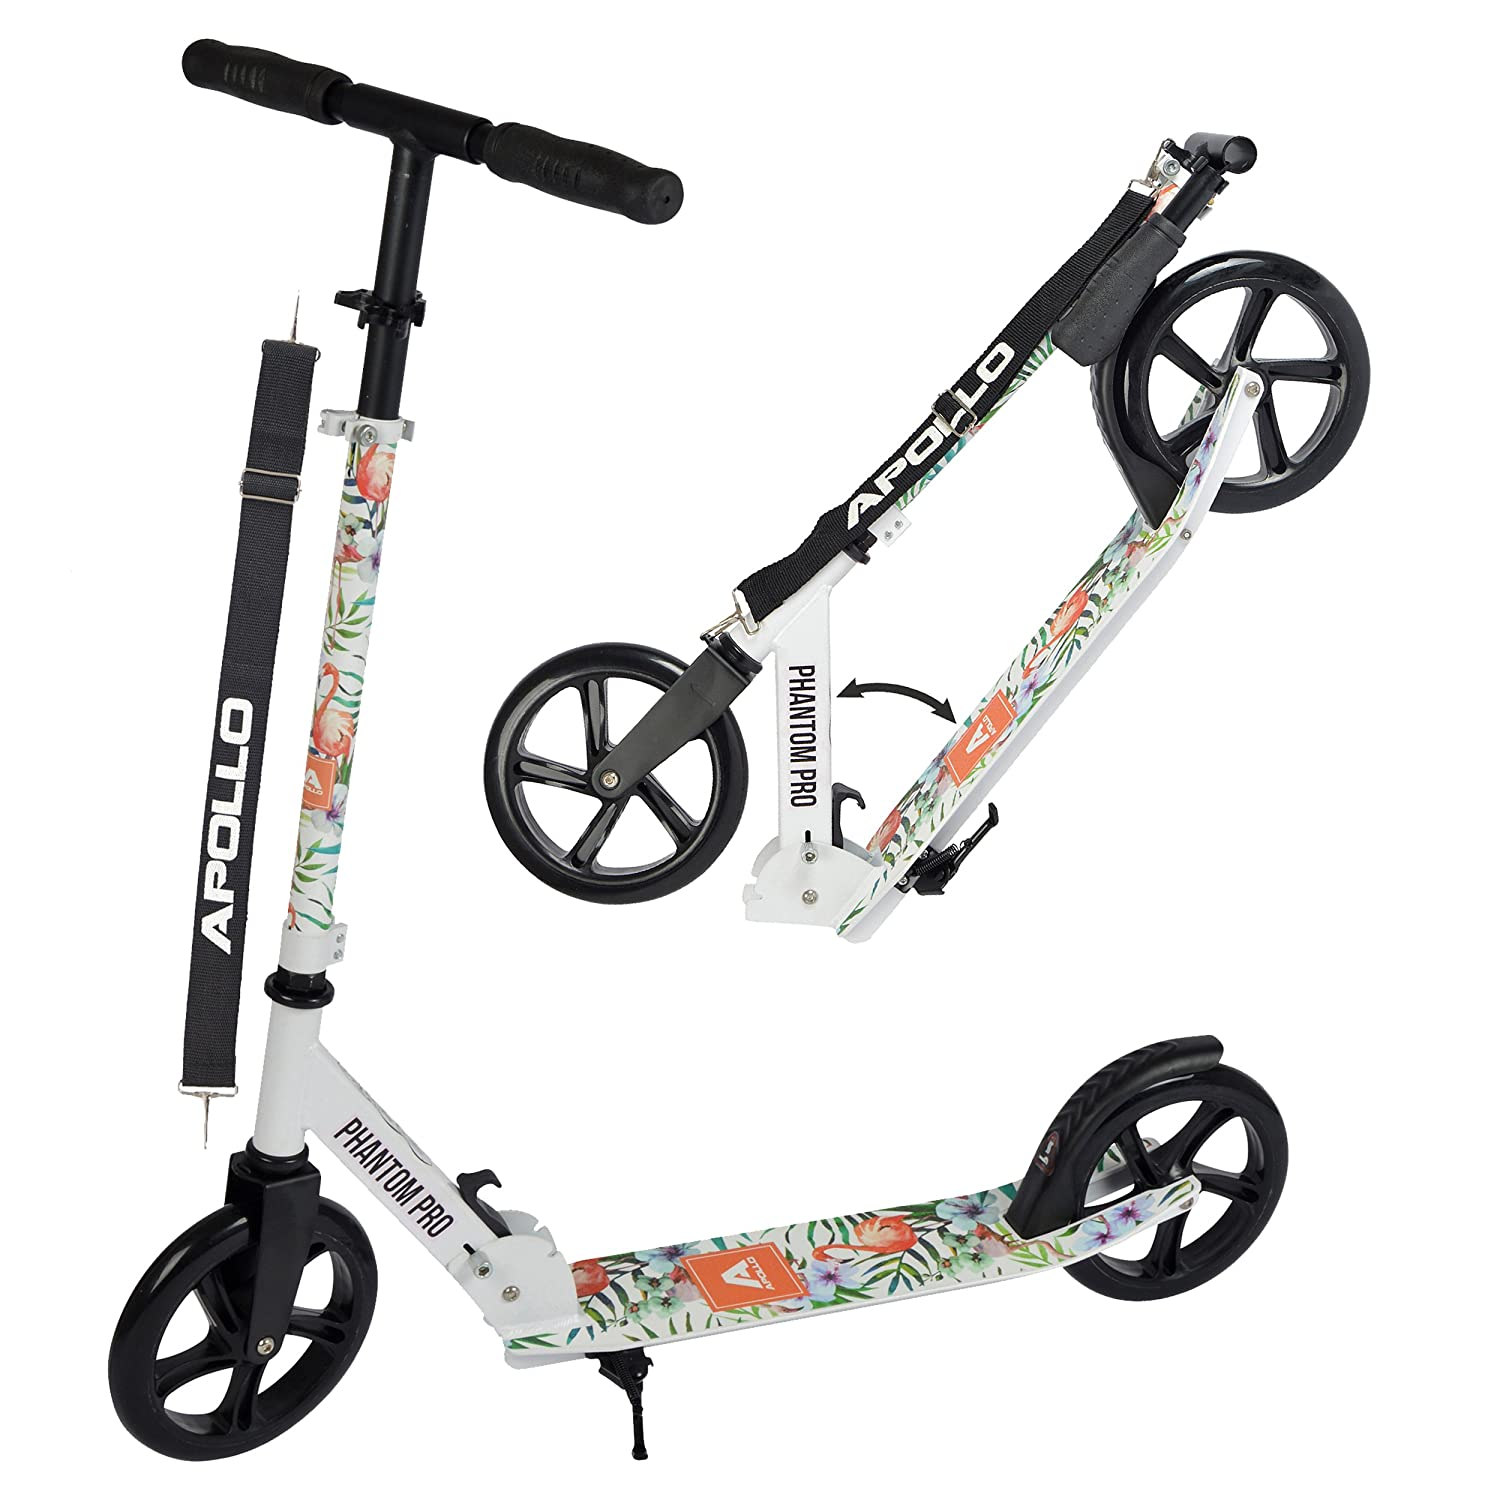 Apollo Big Wheel Scooter 200 mm - Phantom Pro Rosa es un City Scooter de Lujo, City Roller Plegable y Ajustable en Altura, Kick Scooter para Adultos y Niños 3S GmbH & Co. KG